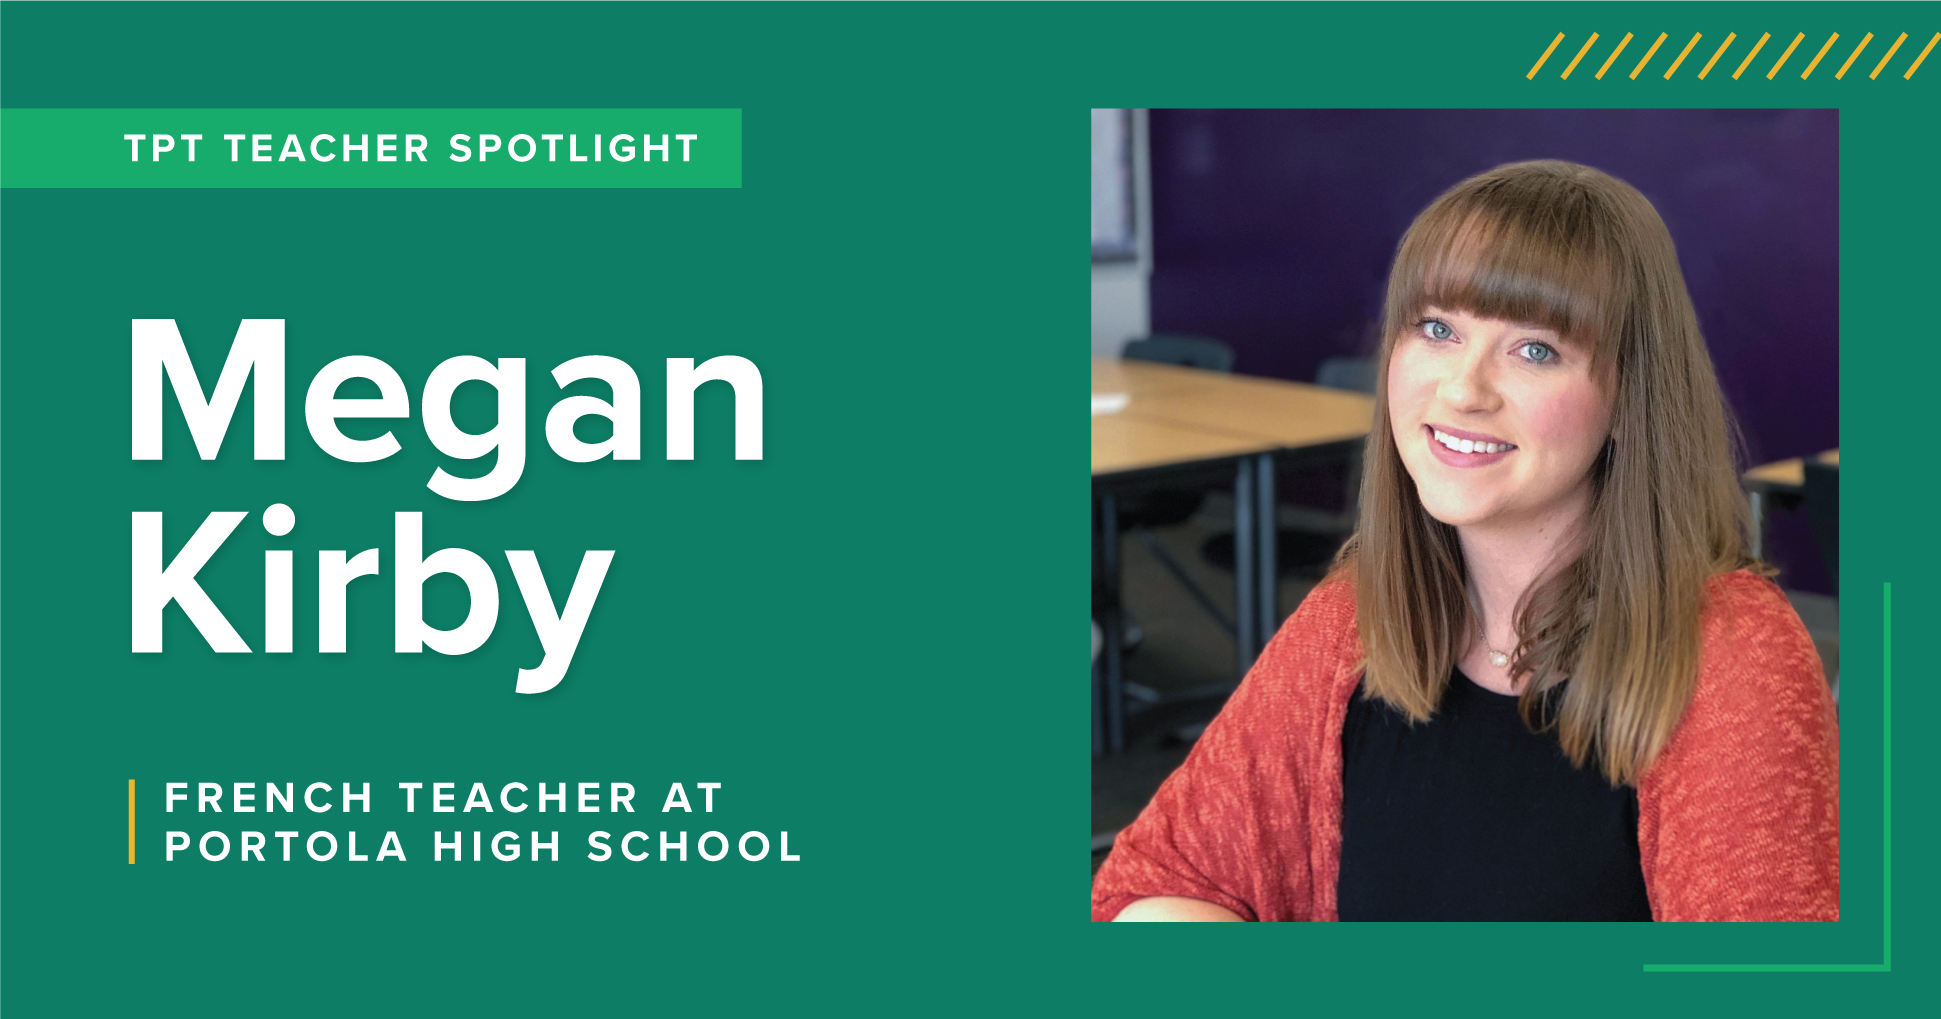 A TpT Teacher Spotlight on Megan Kirby, a French teacher at Portola High School.